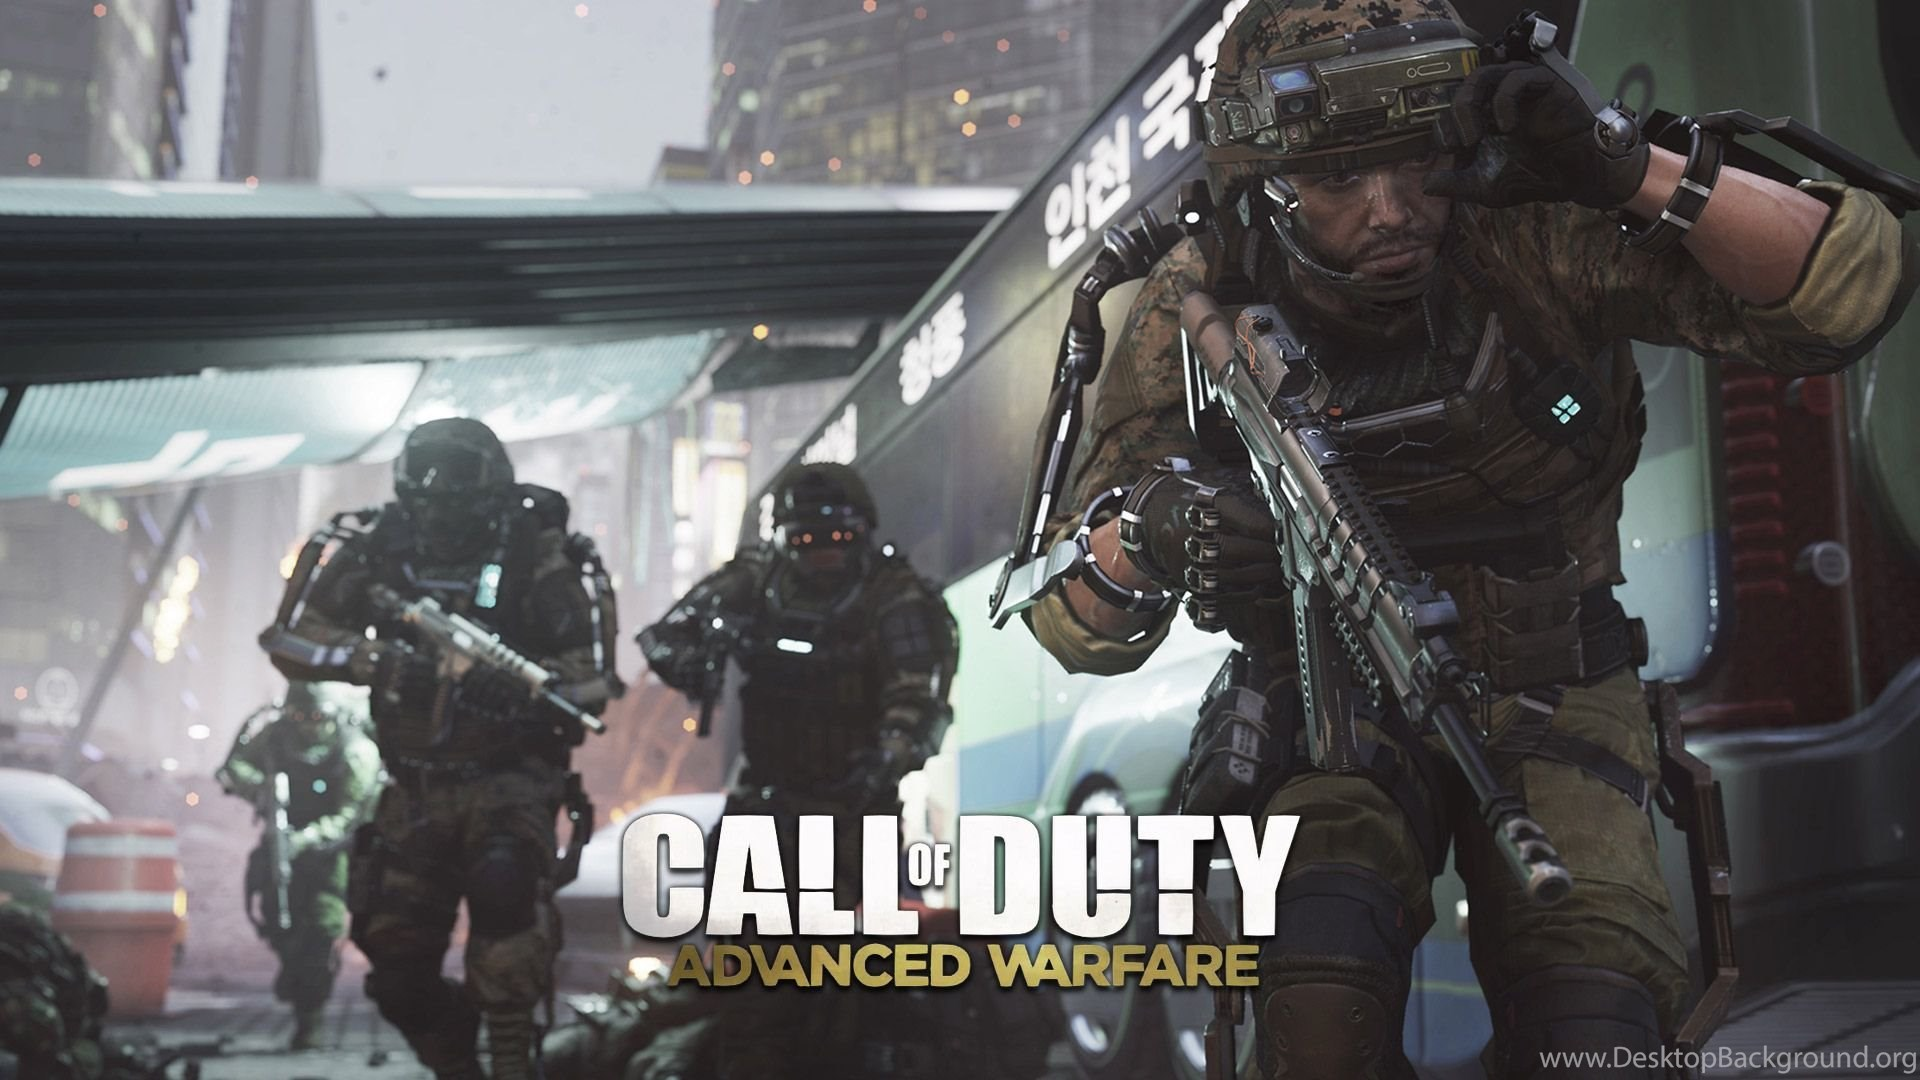 Call Of Duty Advanced Warfare Full HD Backgrounds 1920x1080